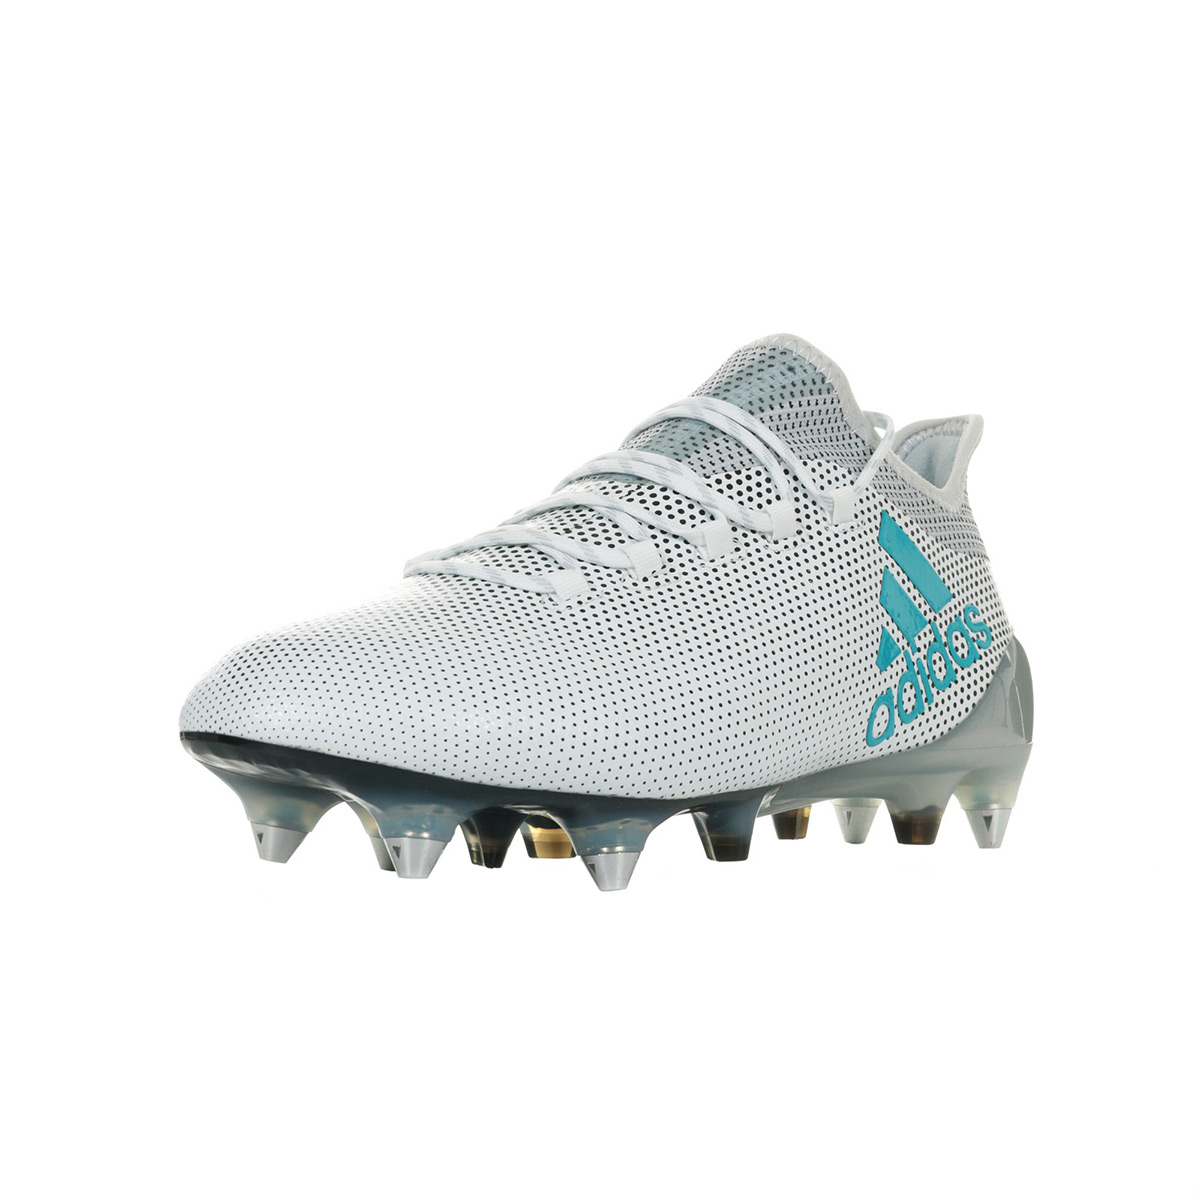 S82315Football Performance X Sg Adidas 1 17 Homme D9WEH2I